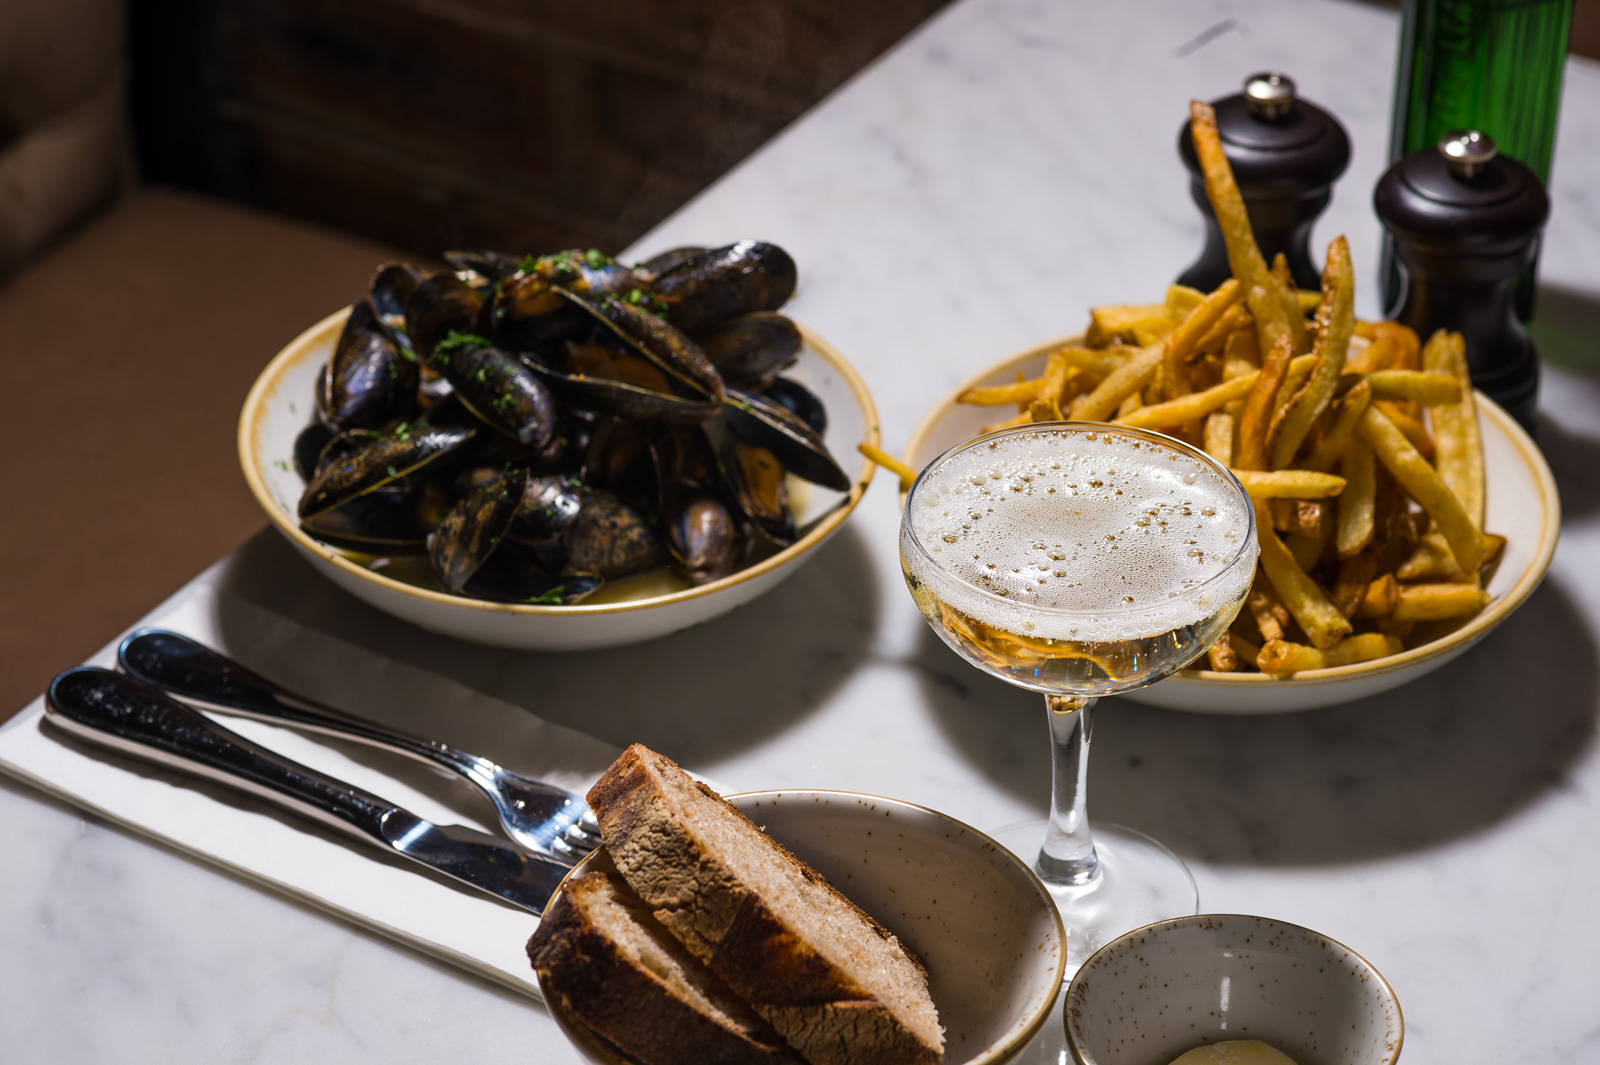 mussels and chips.jpg